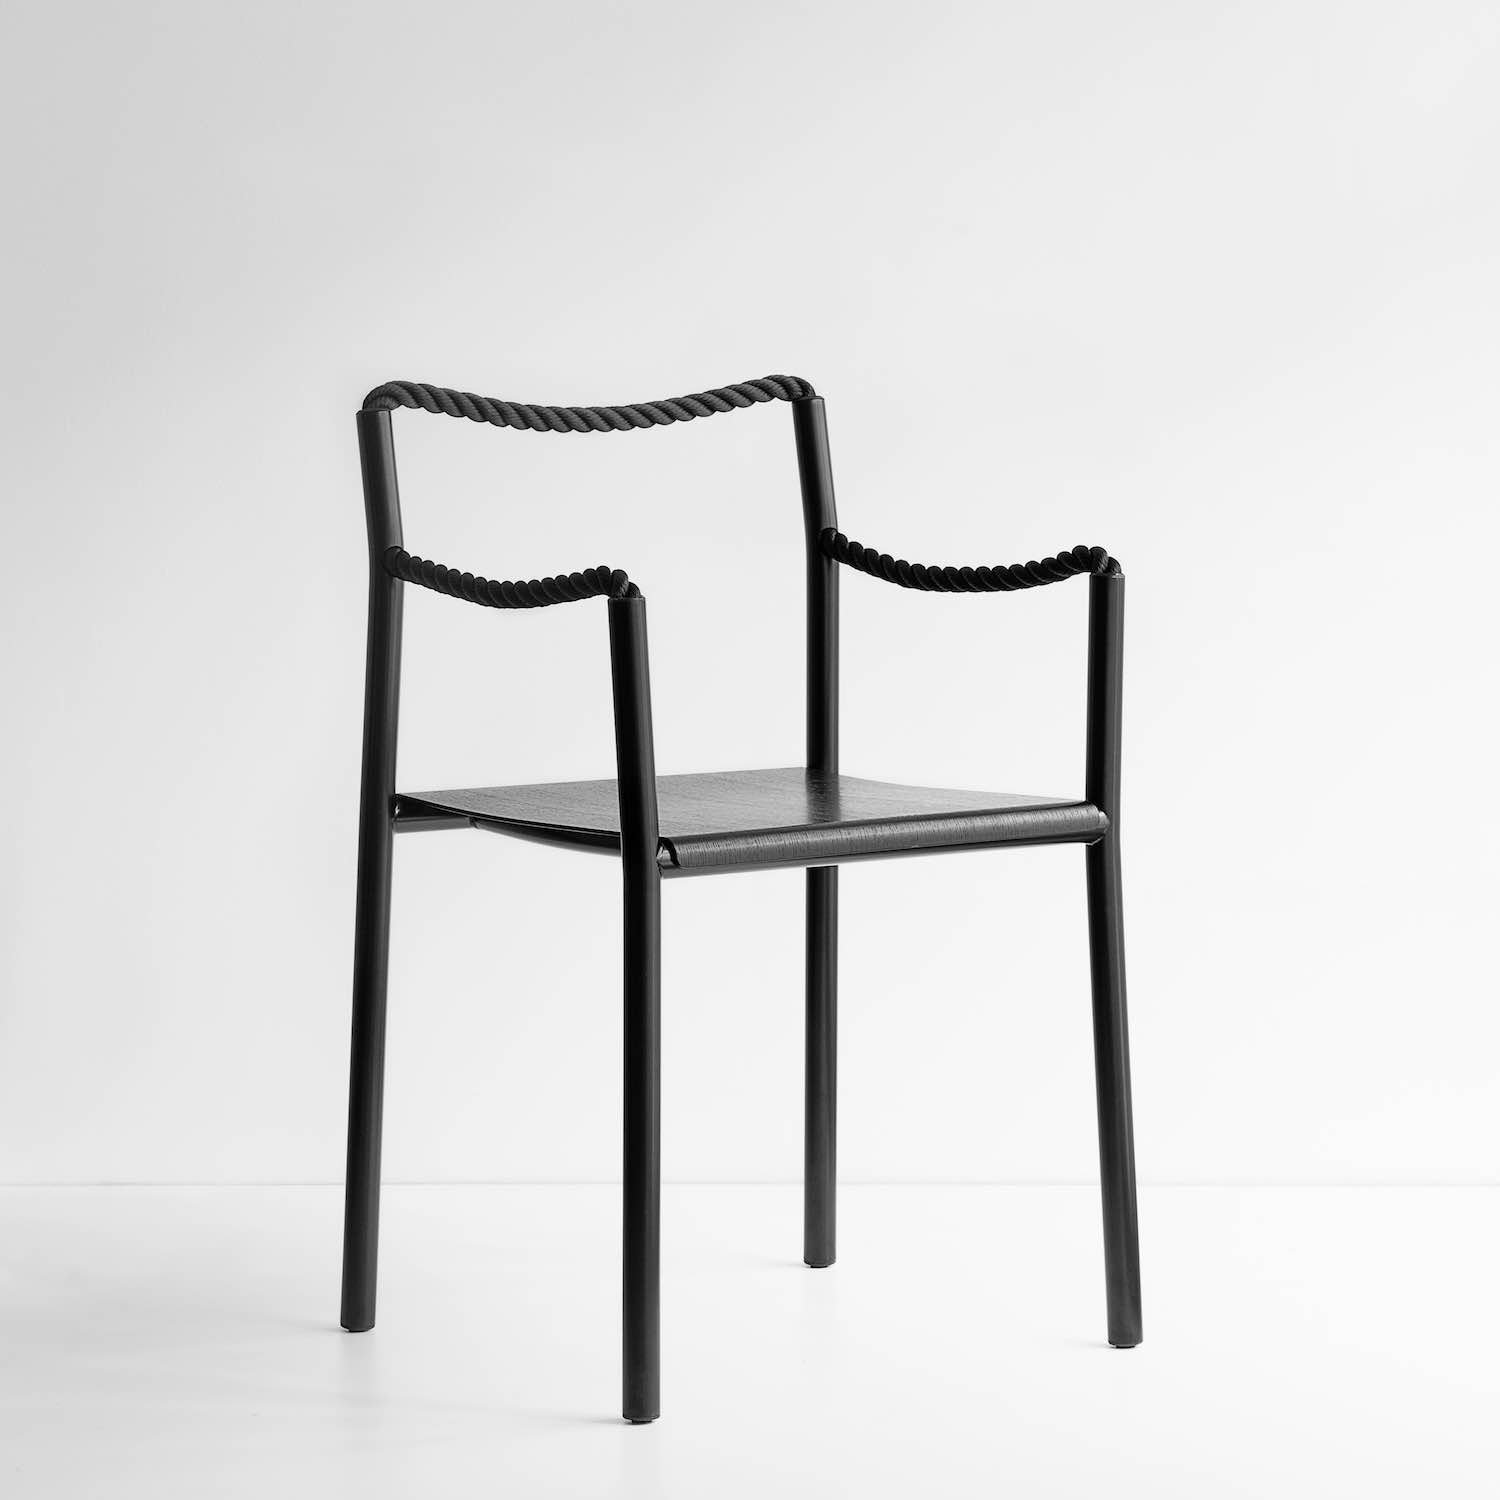 'Rope Chair' by Rowan and Erwan Bouroullec x Artek - Photo by Artek.